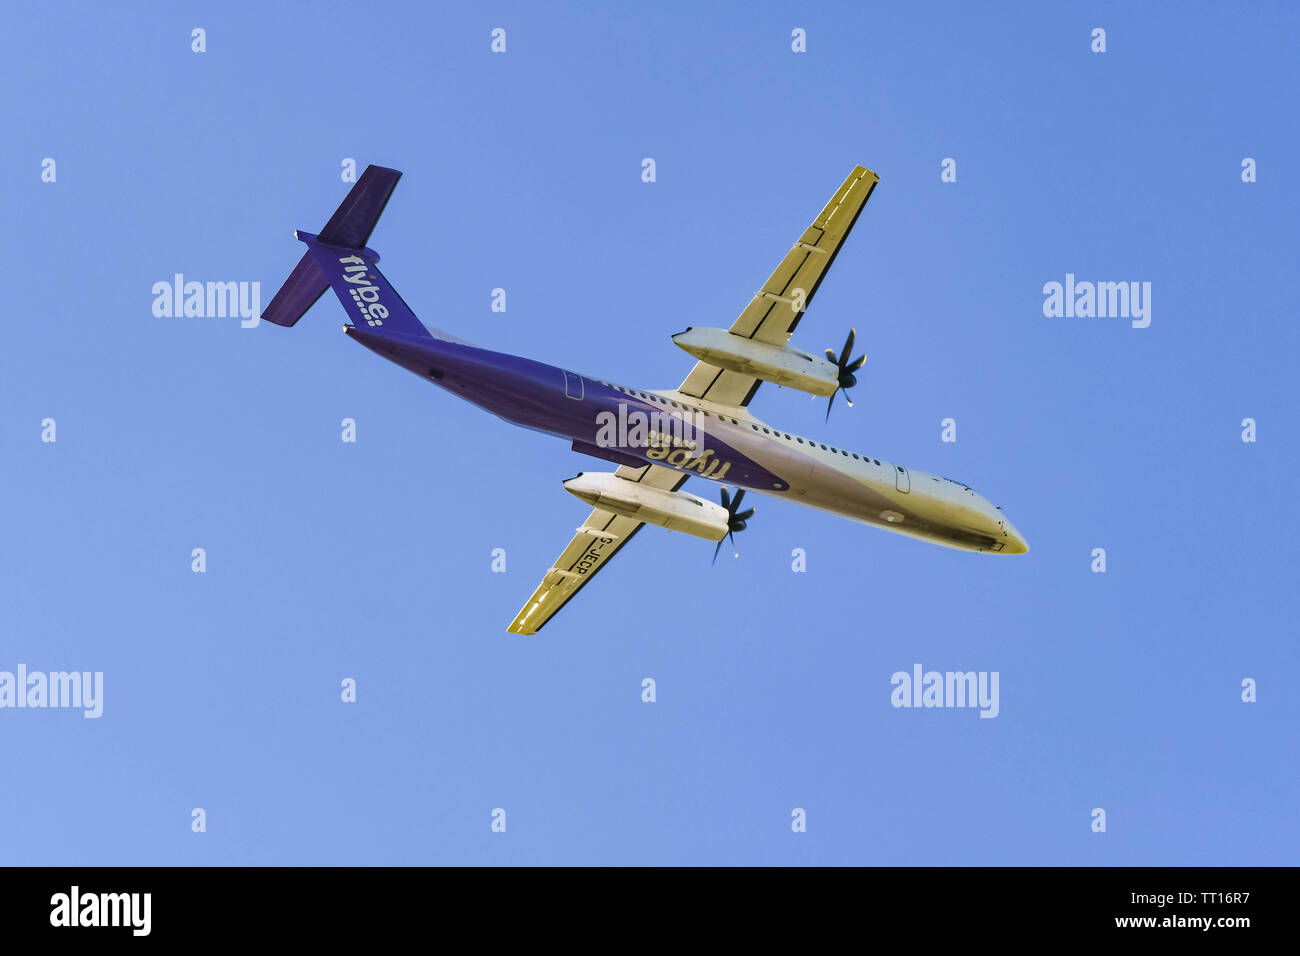 LONDON HEATHROW AIRPORT, ENGLAND - MARCH 2019:  De Havilland Canada DHC-8-402Q Dash 8 turboprop aircraft operated by Flybe leaving London Heathrow Air - Stock Image